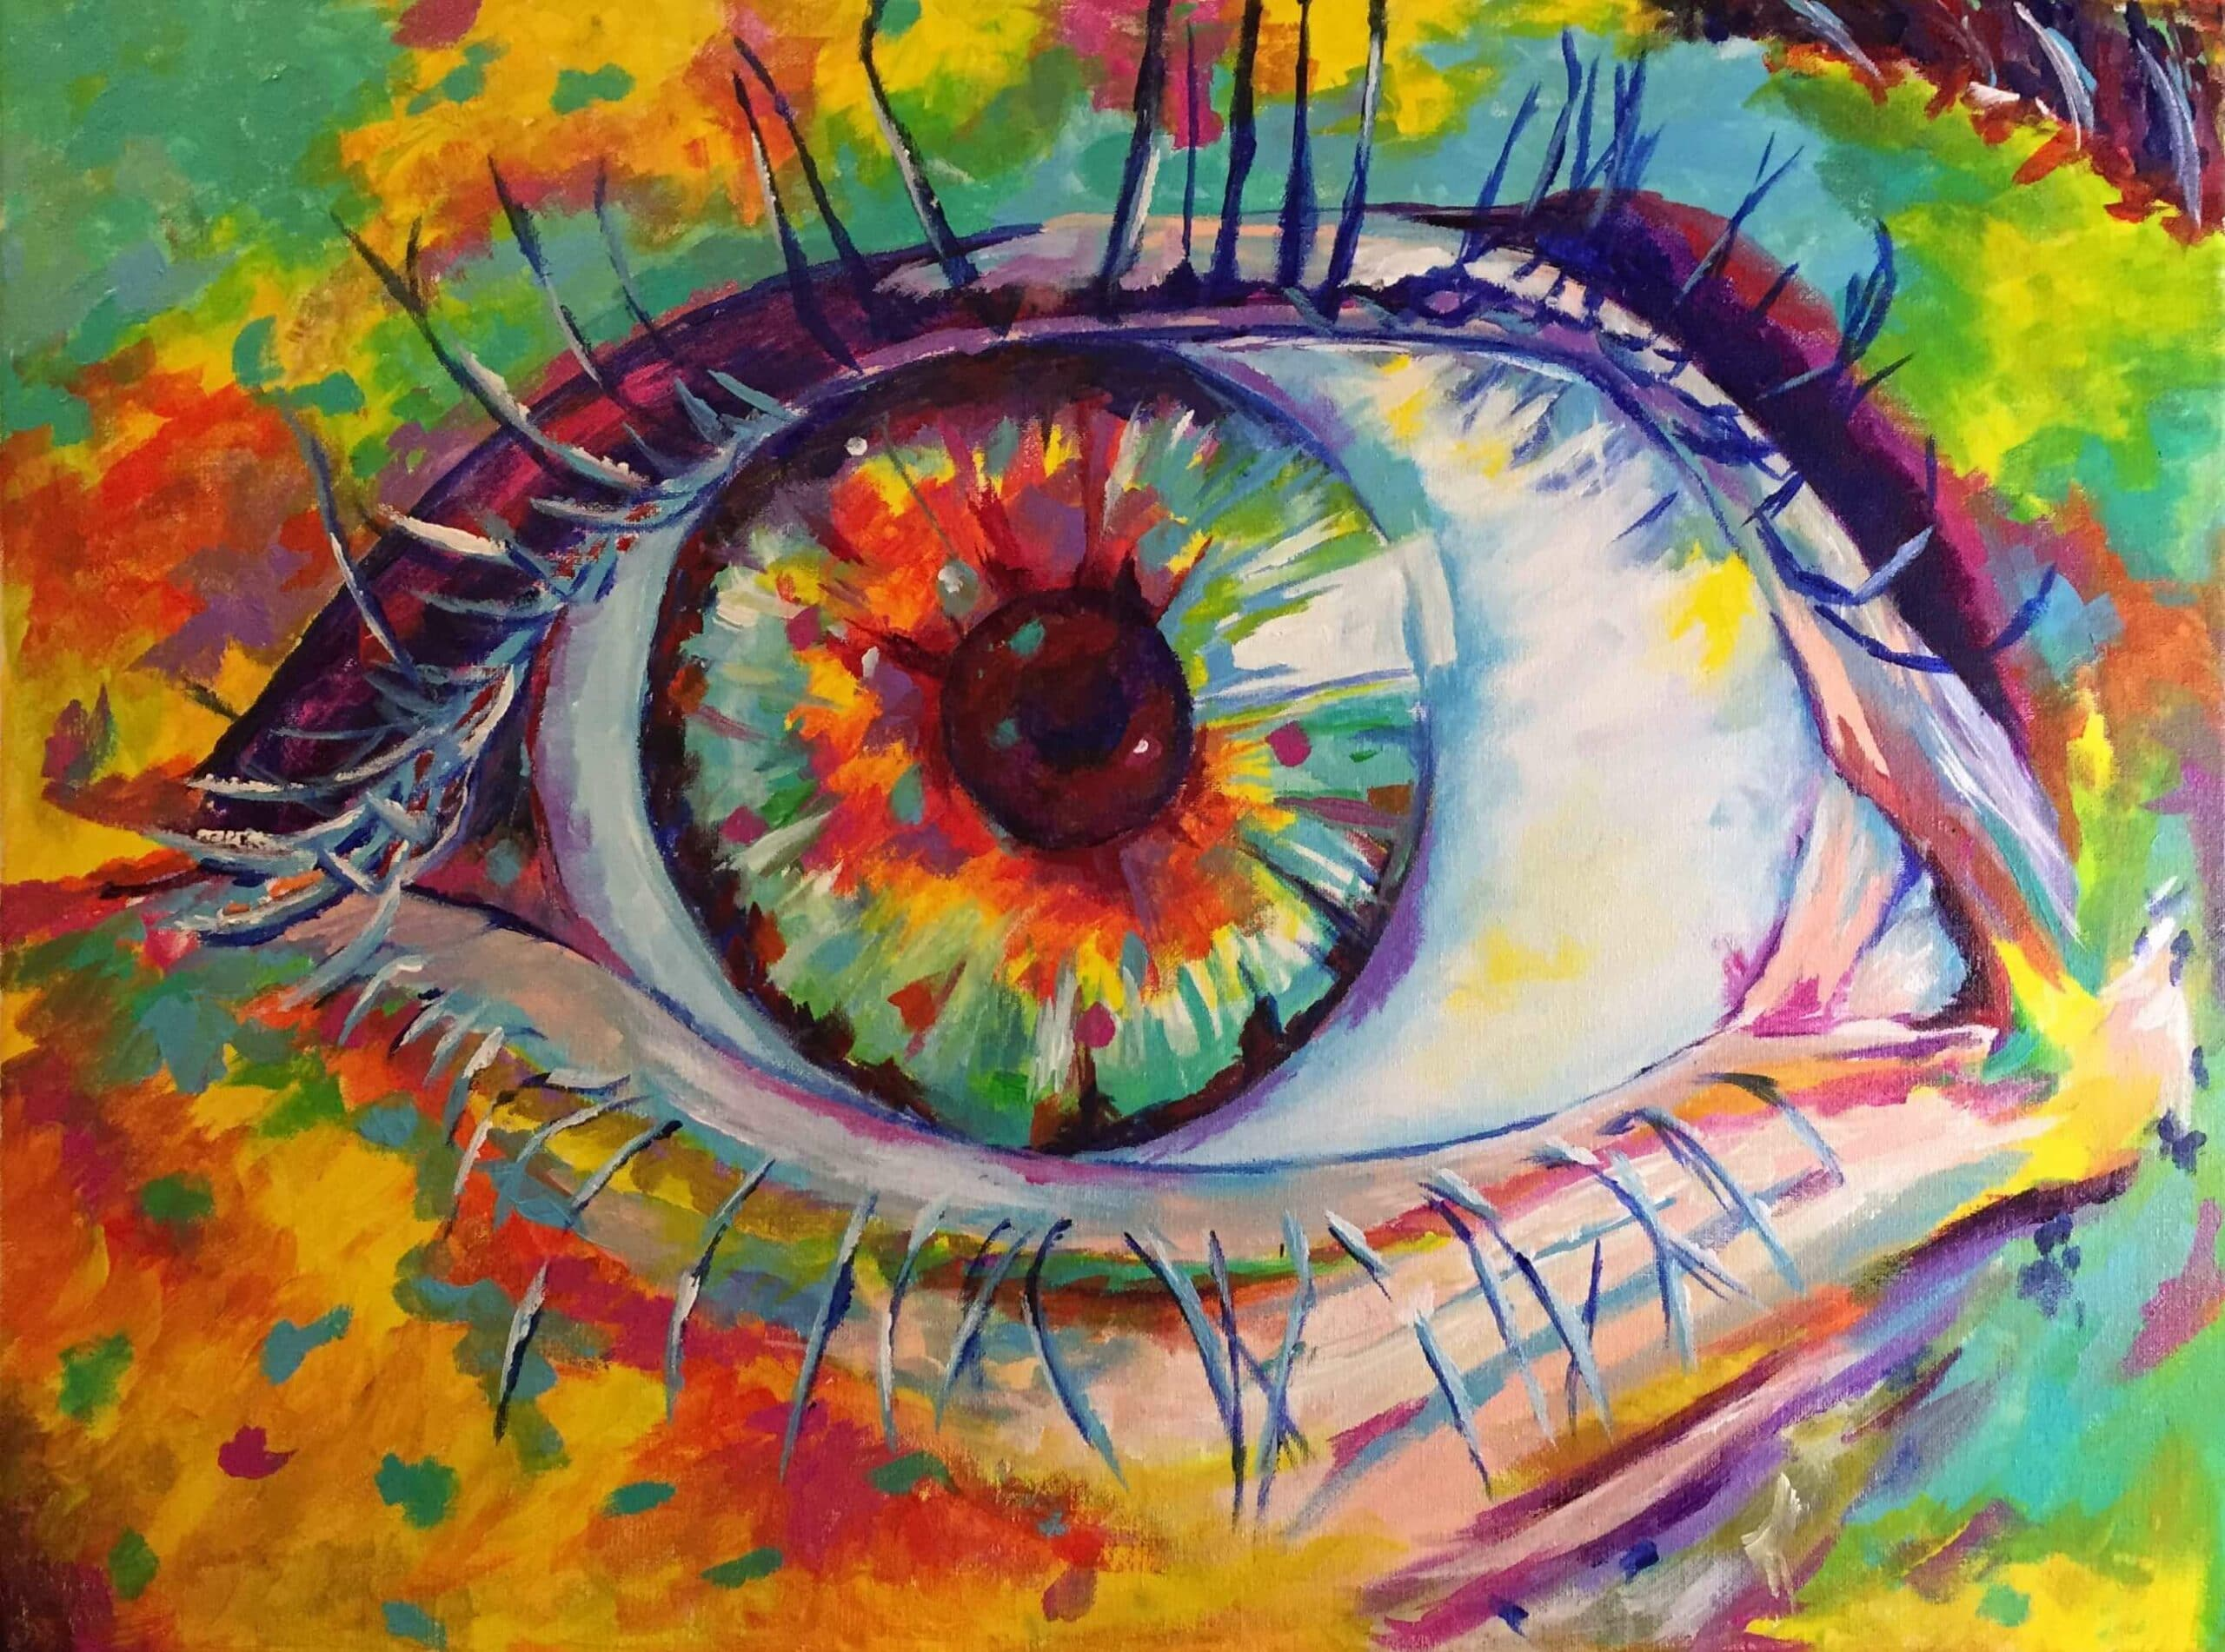 Eye of the Impressionist, Taylor Wise